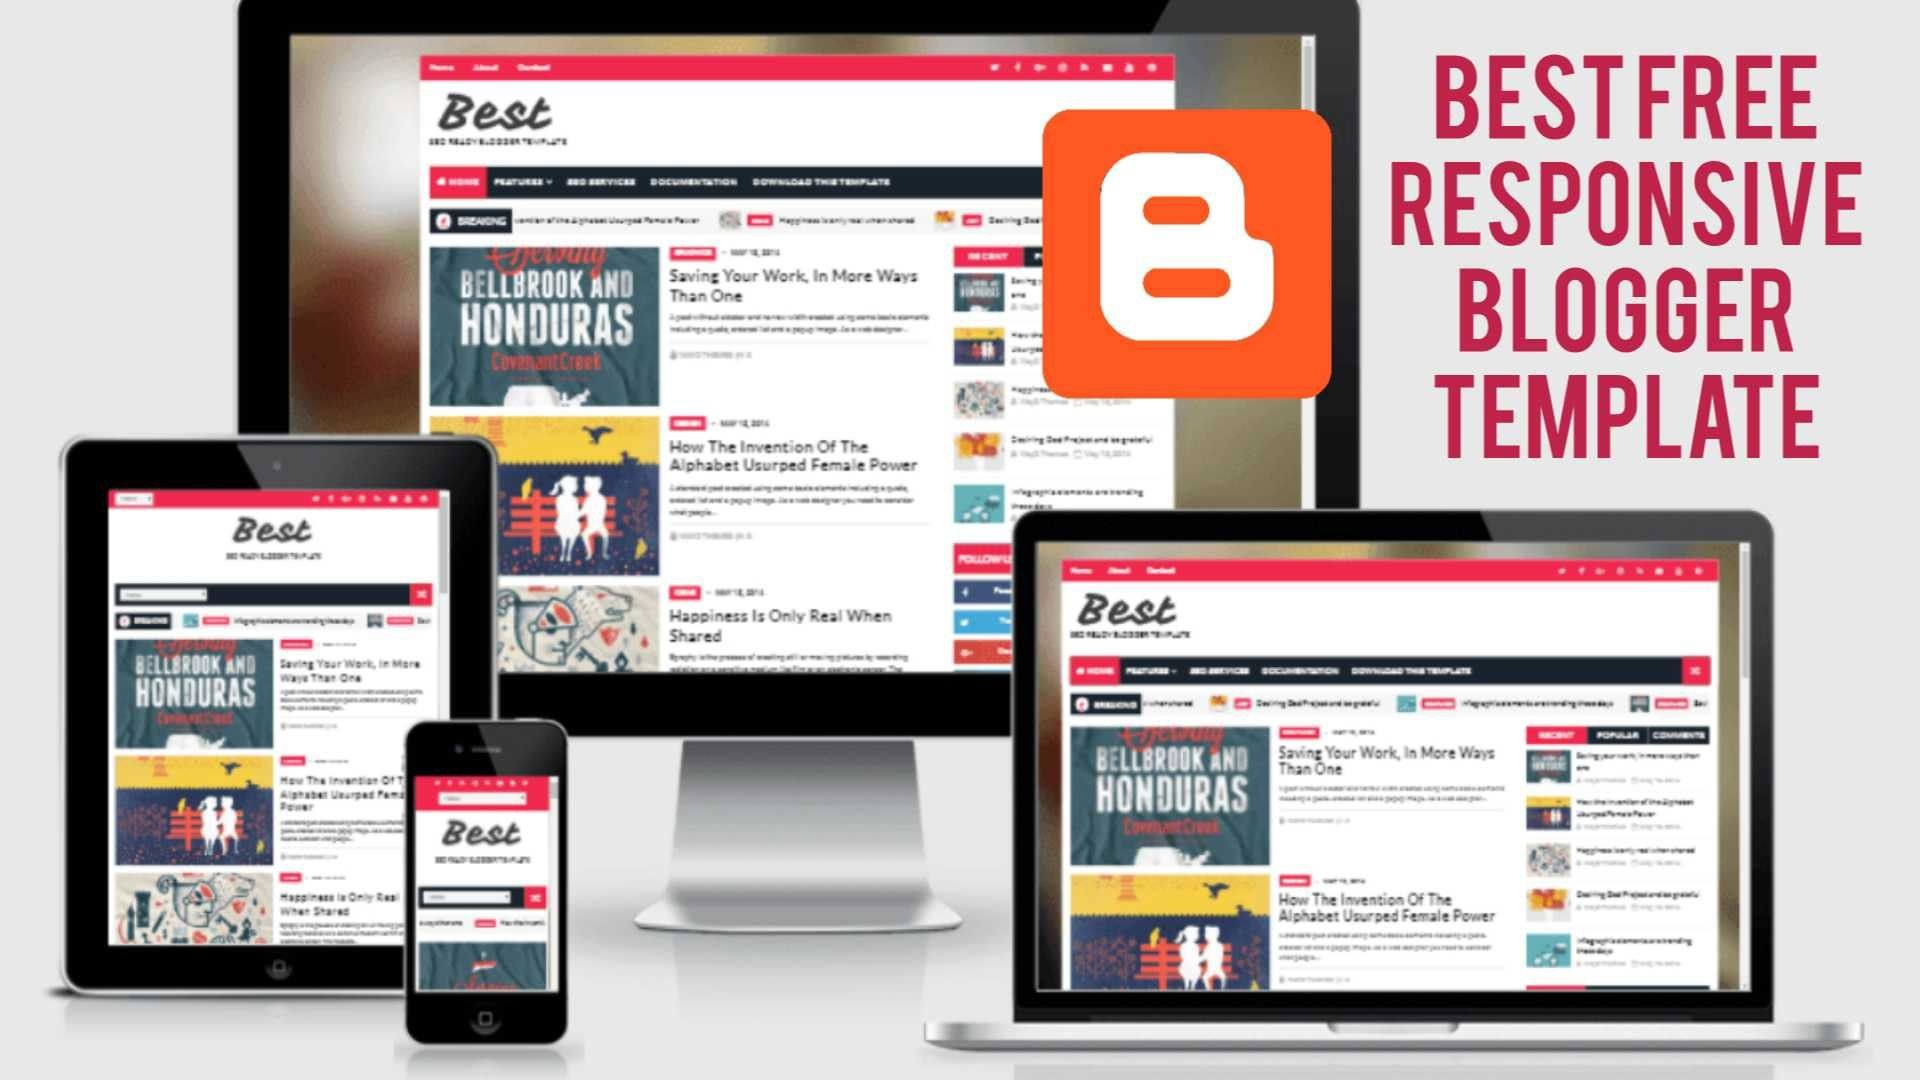 000 Beautiful Top Free Responsive Blogger Template High Def  Templates Best For Education 2020 20191920